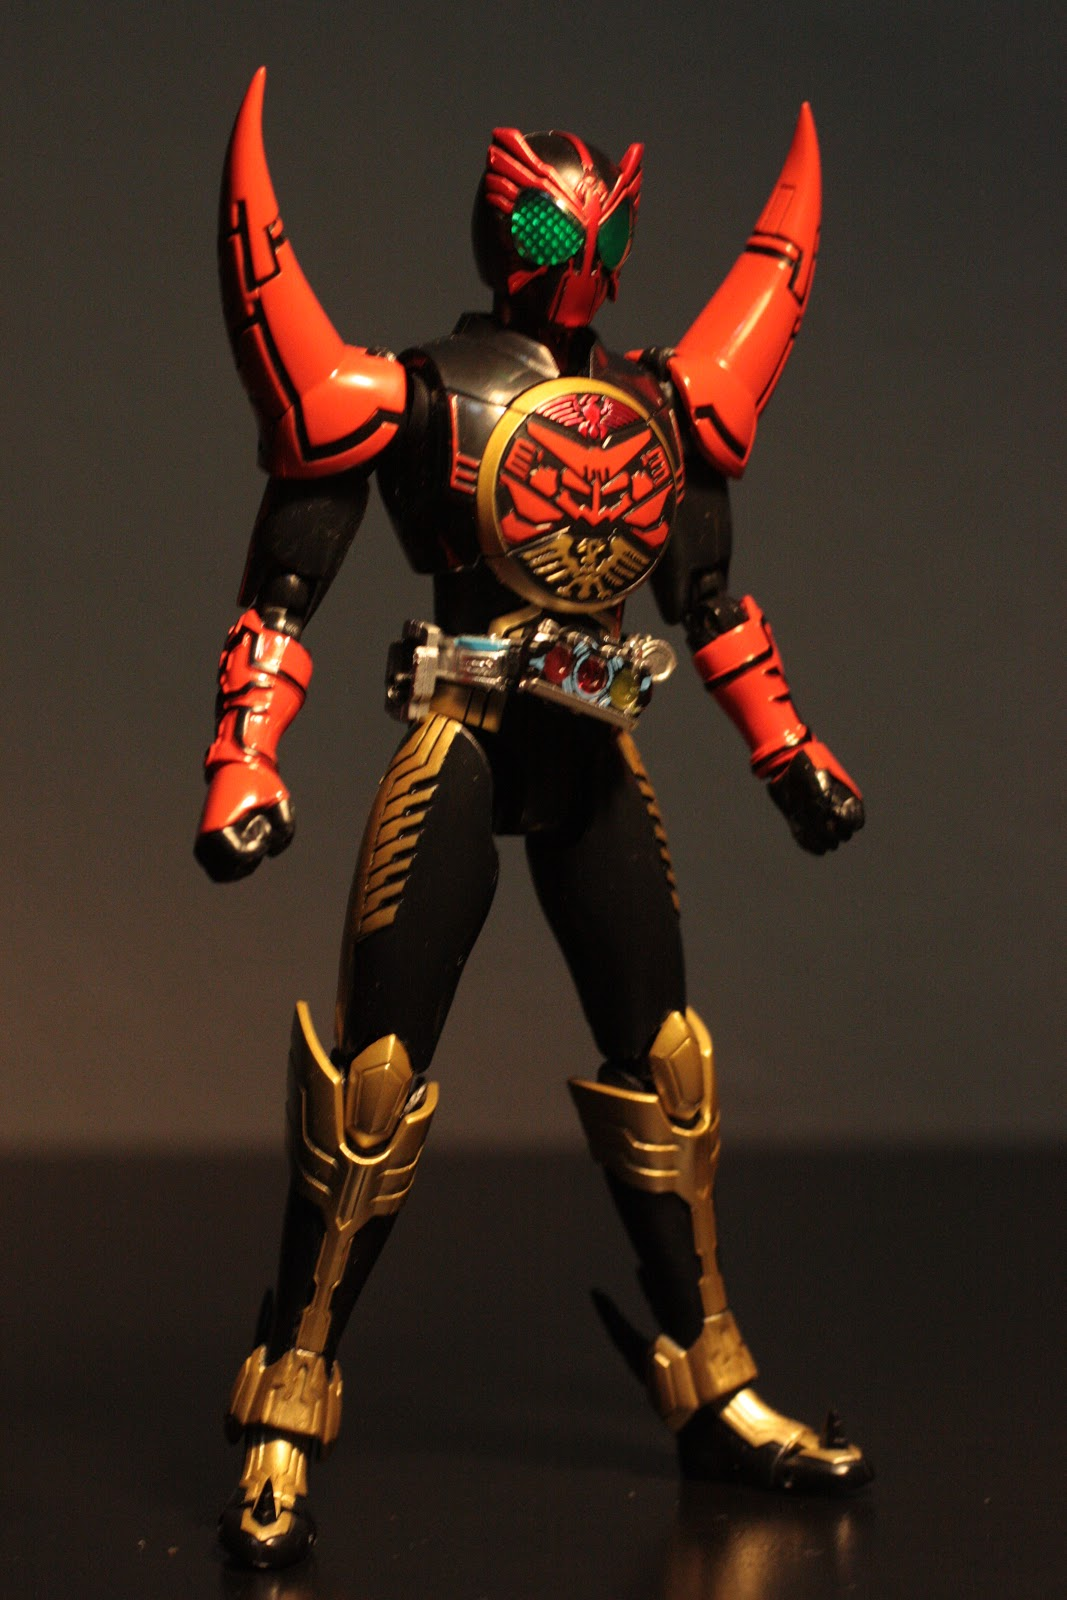 Kamen Rider Ooo Firestarter's Blog: To...